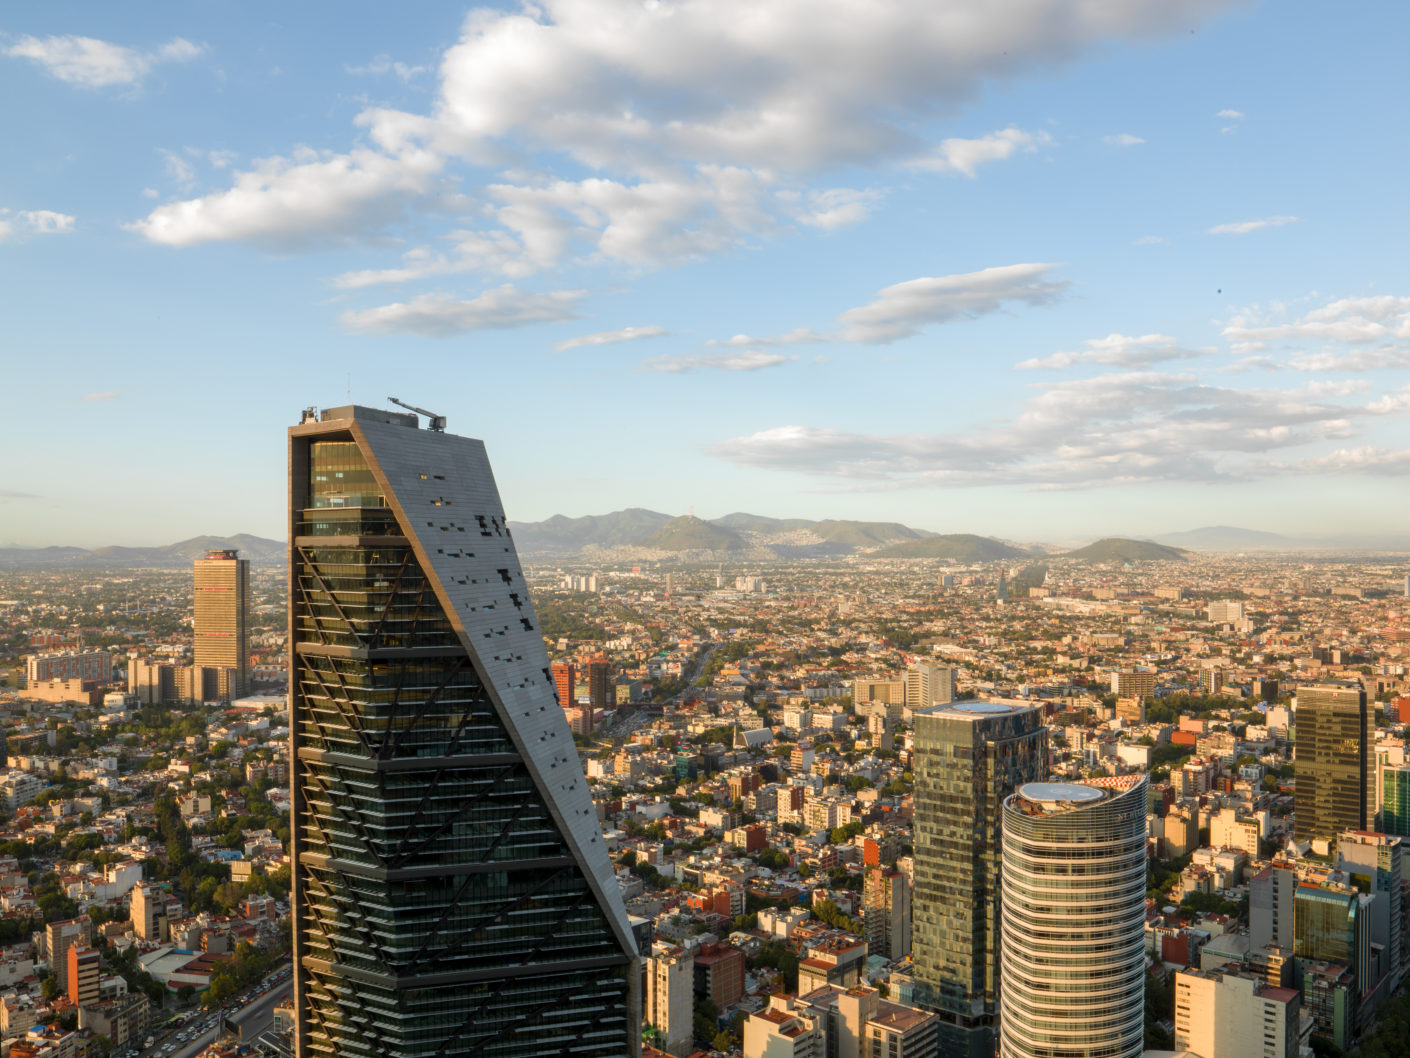 The Torre Reforma in Mexico City has won the International Highrise Award 2018.